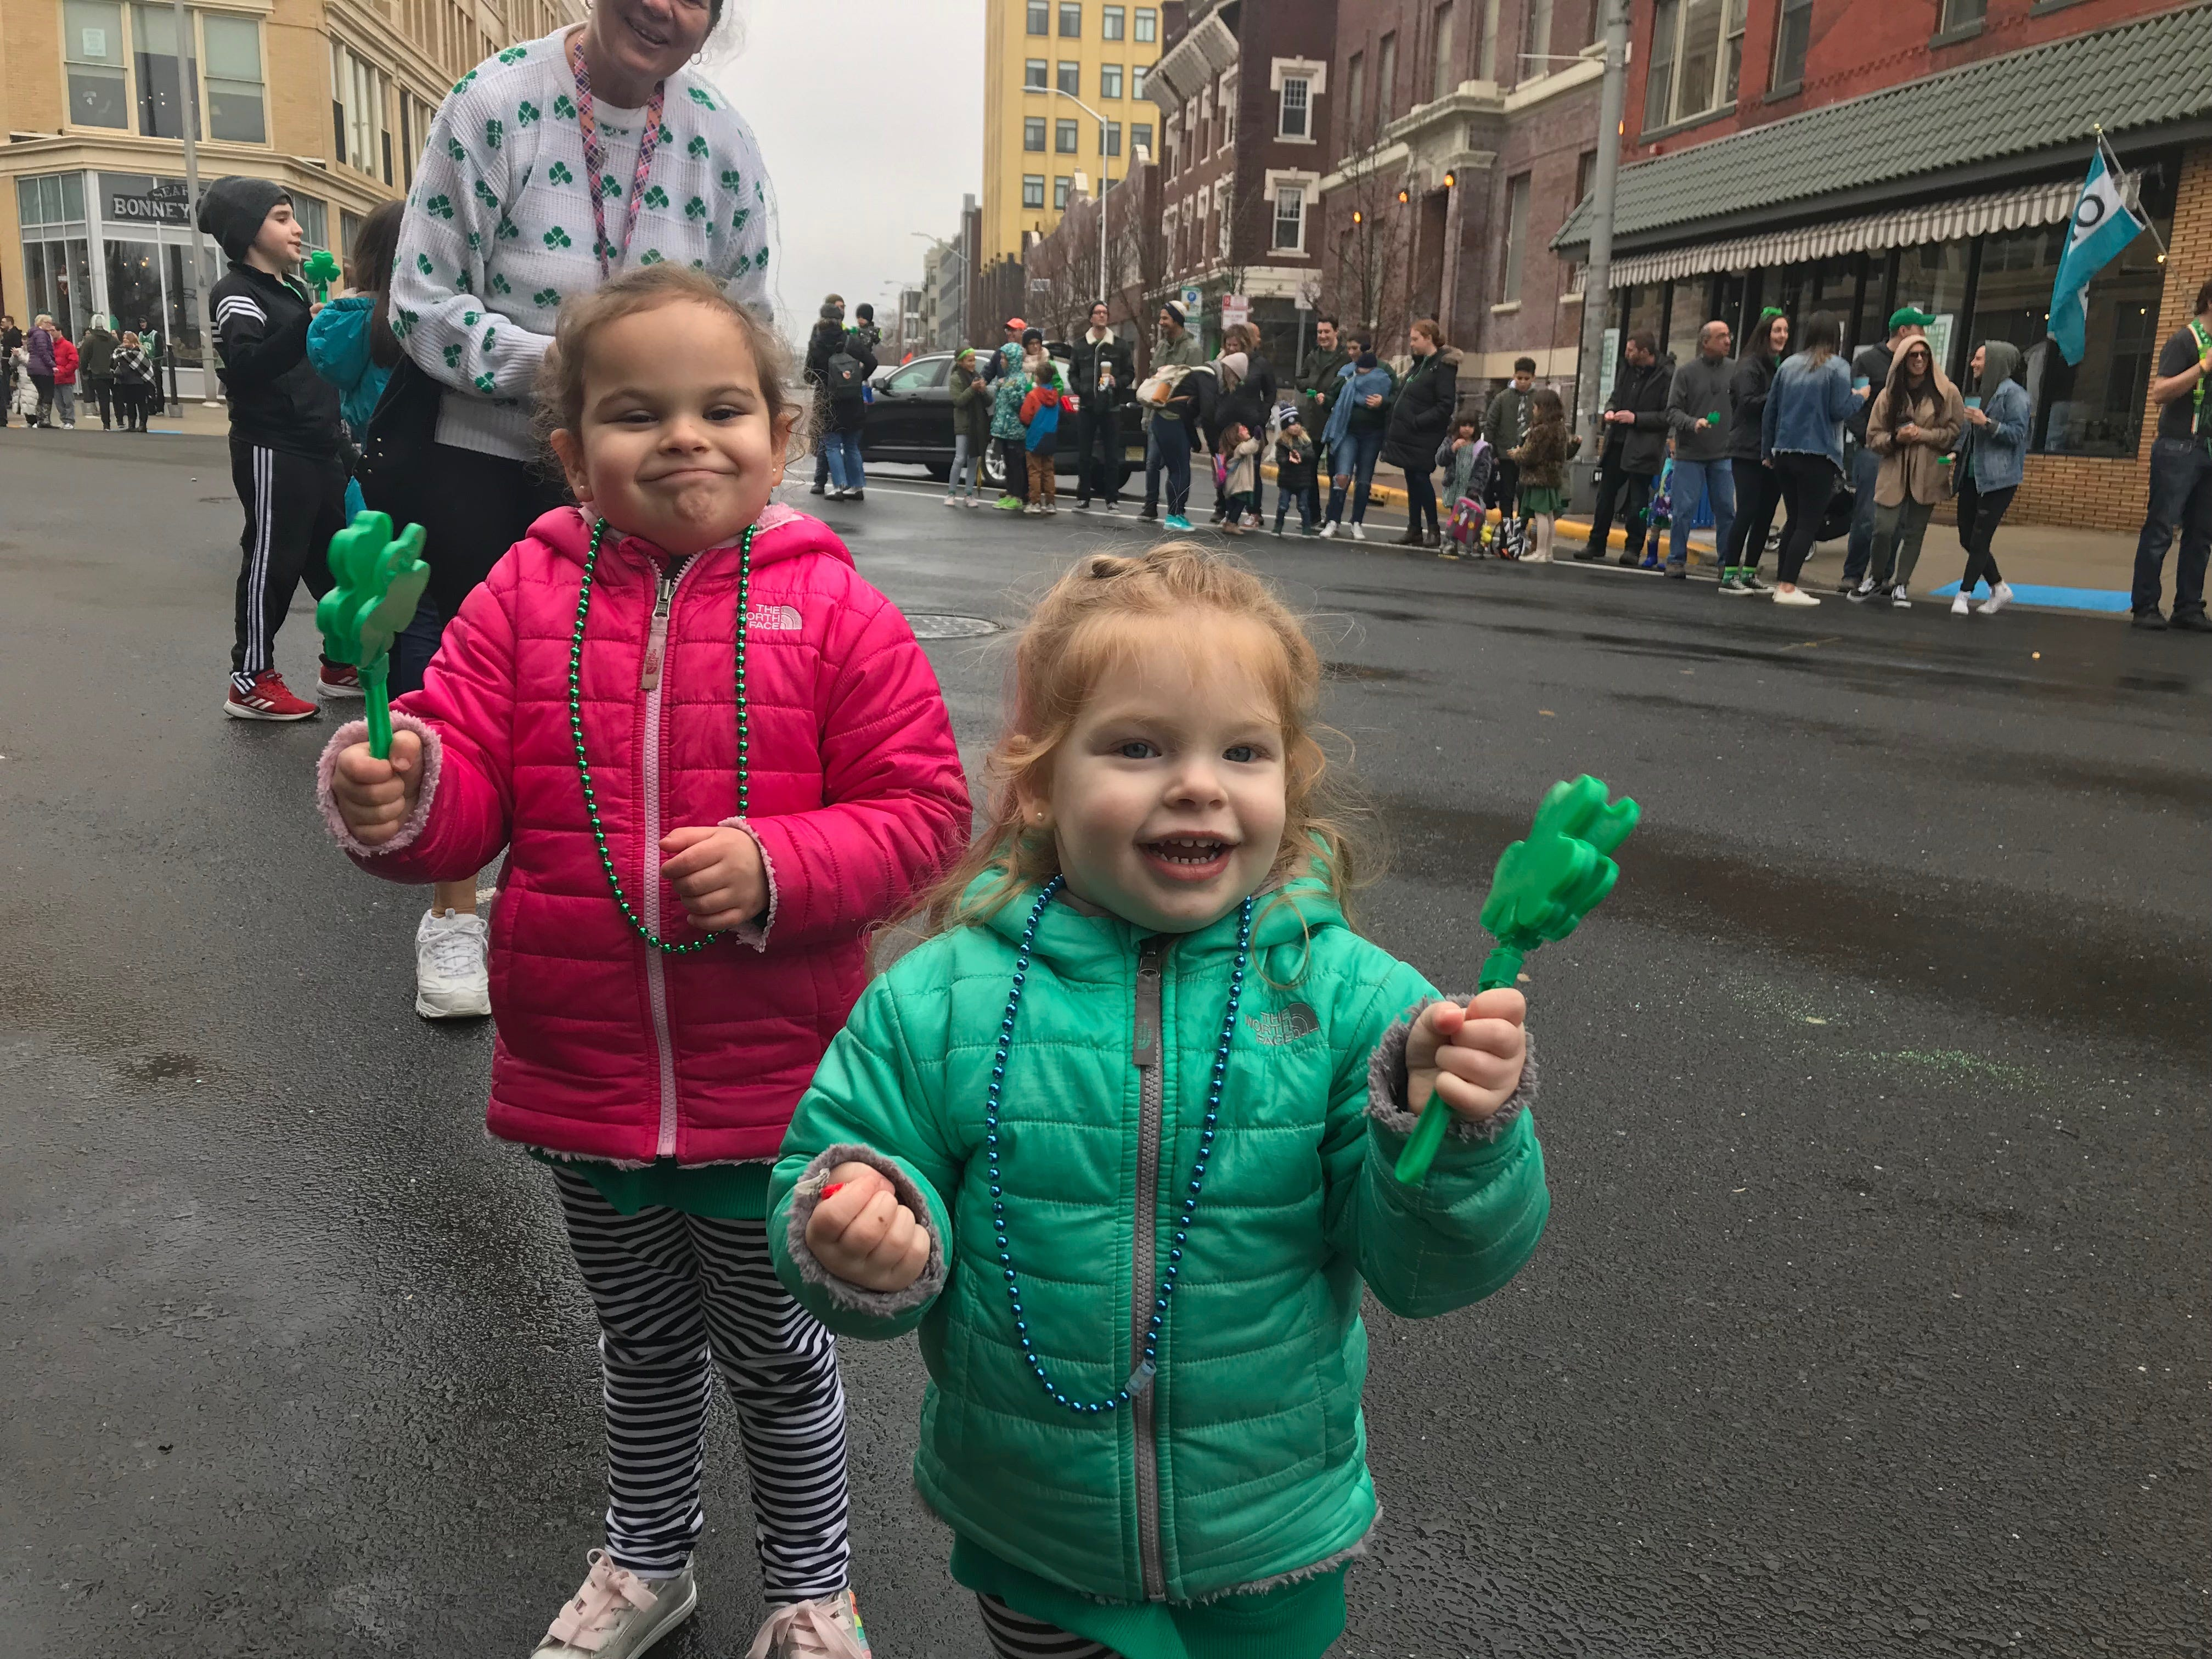 Spectators lined the streets of Cookman Avenue to see the Asbury Park St. Patrick's Day Parade on March 10, 2019.